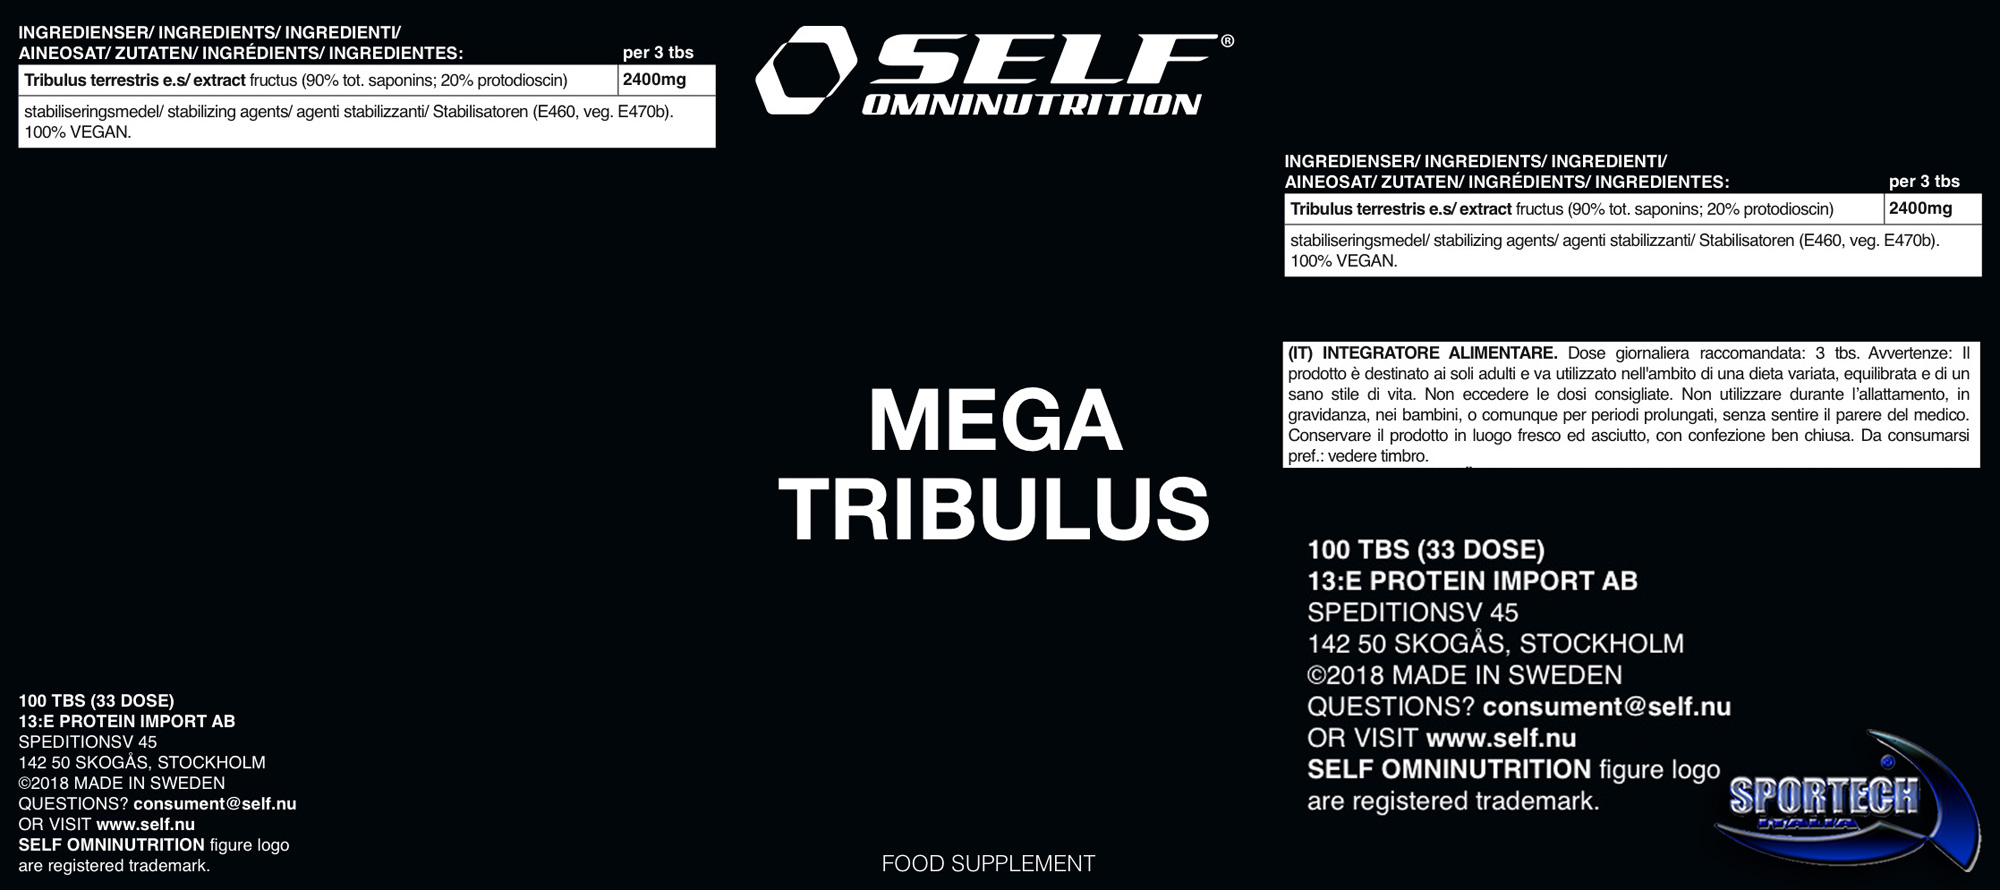 self-mega-tribulus-info